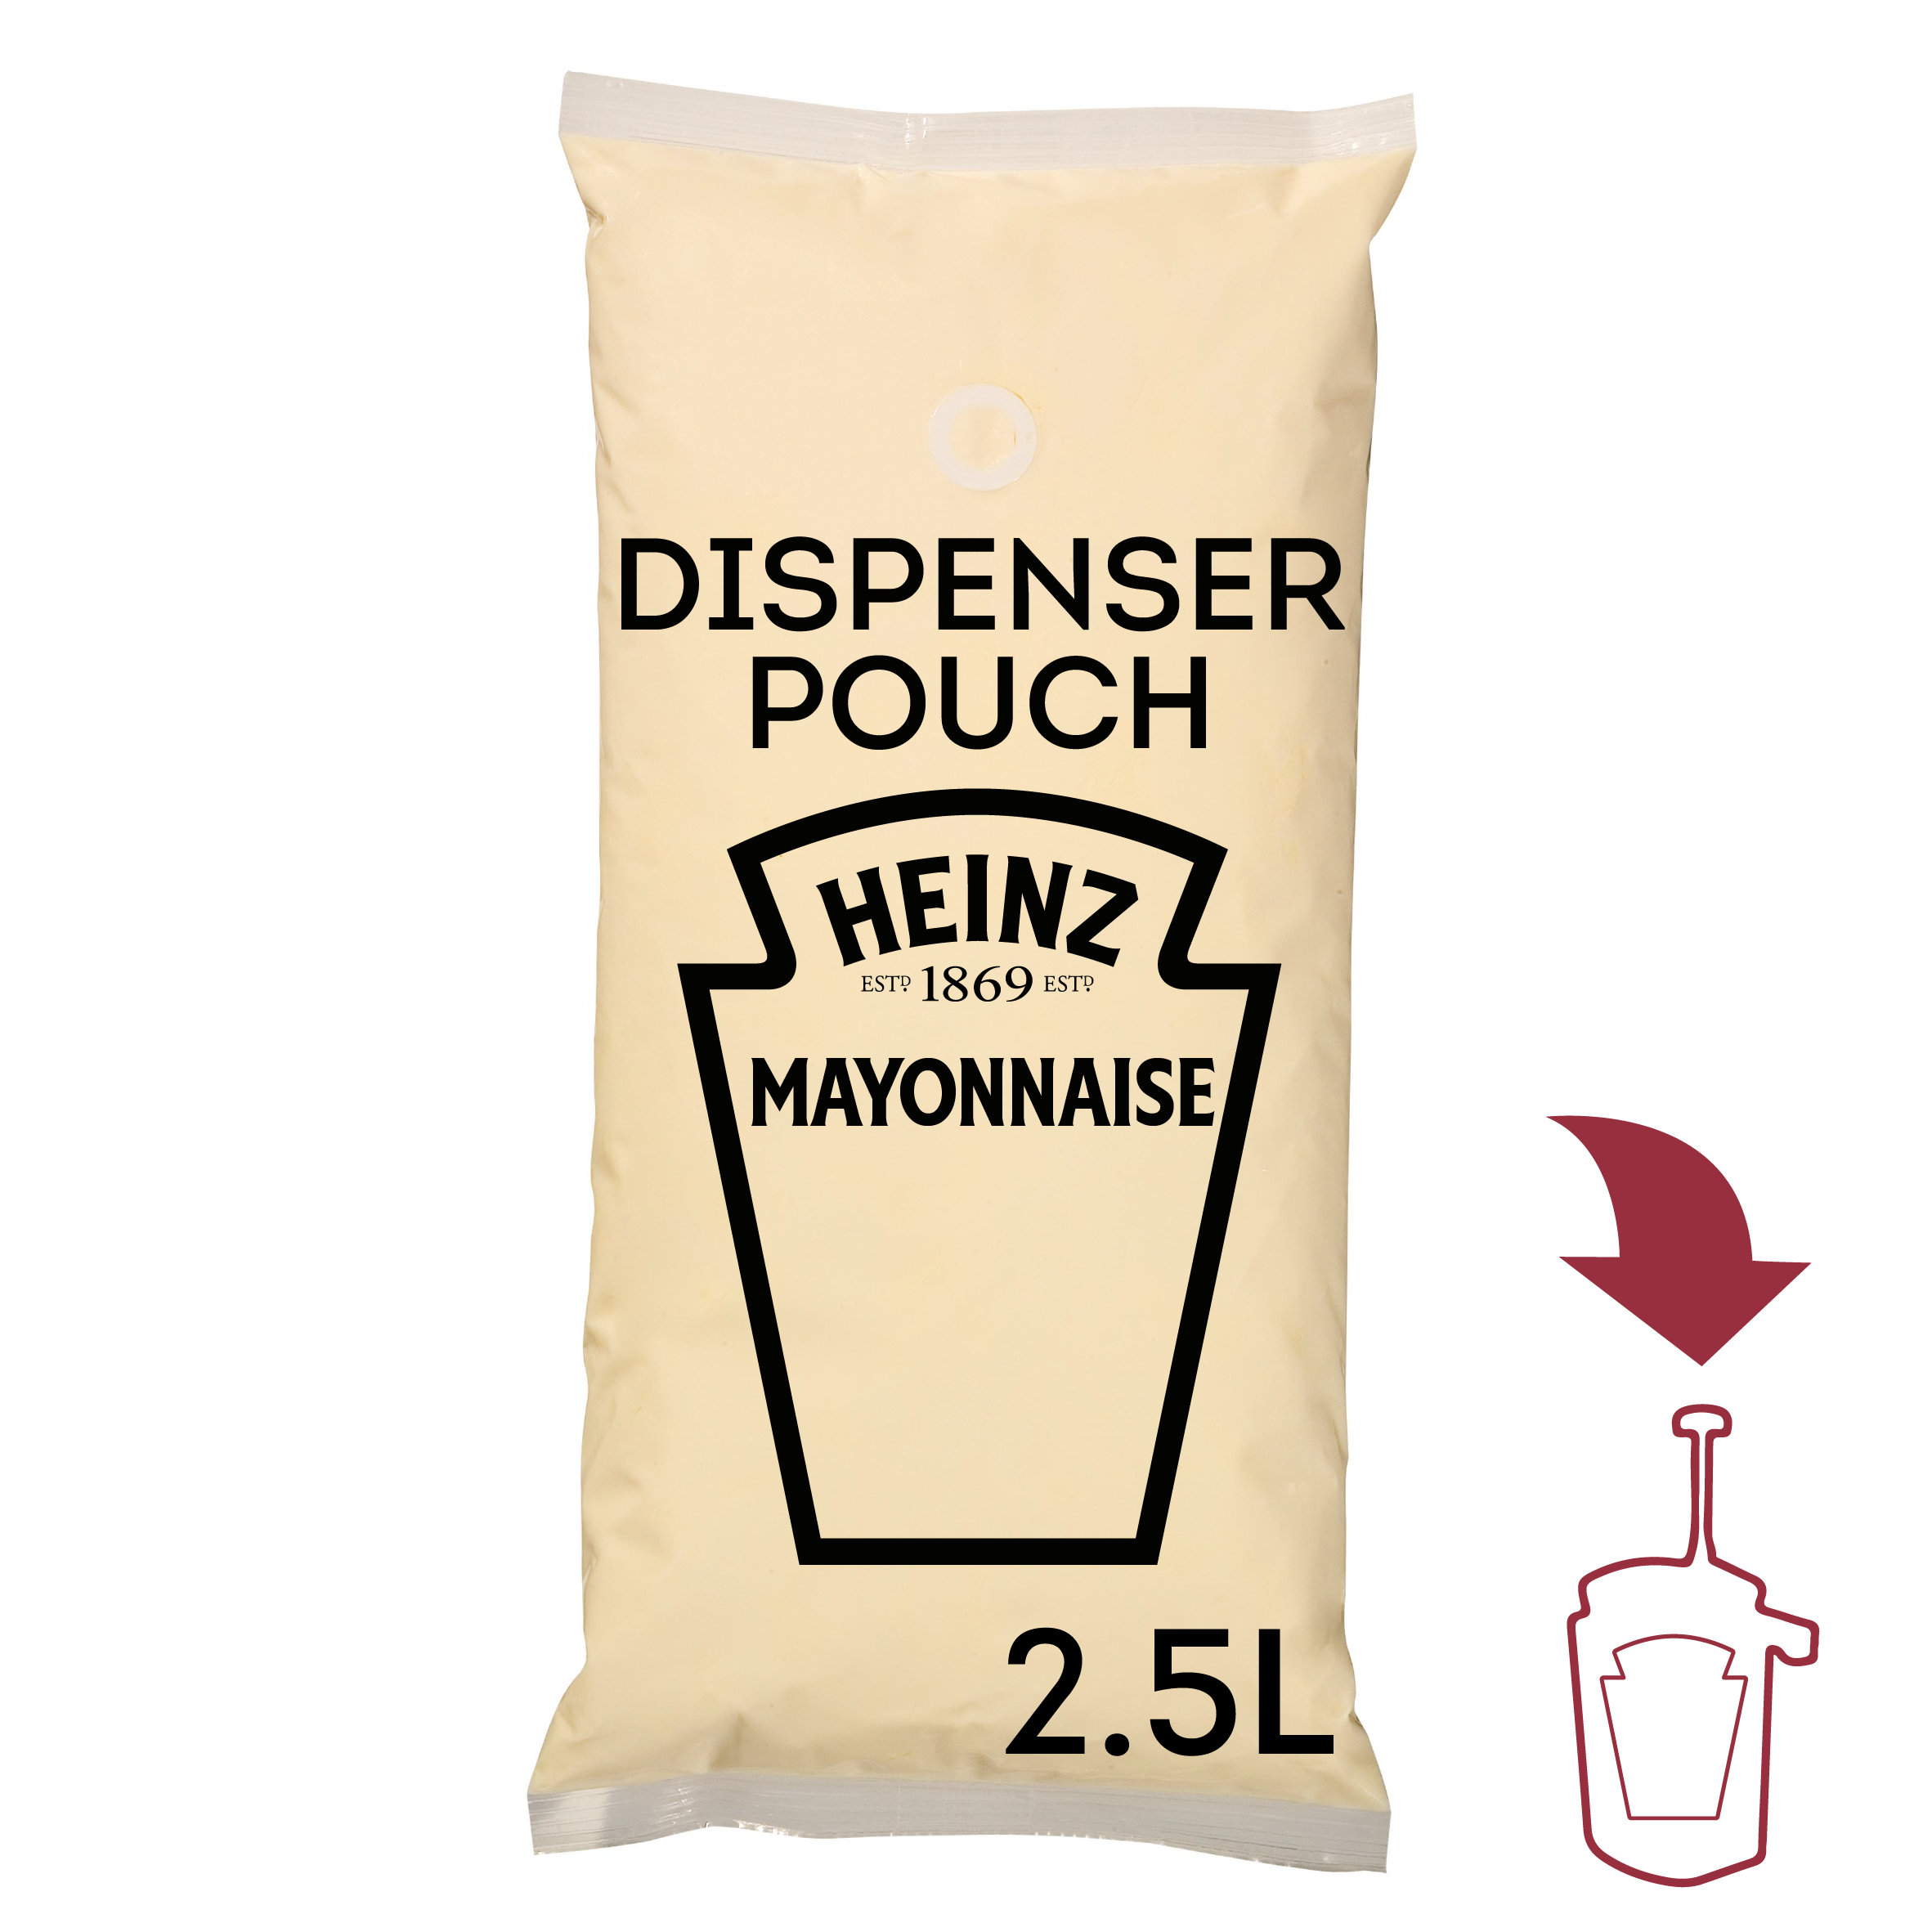 Heinz SOM Seriously Good Mayonaise 70% 2.5L image